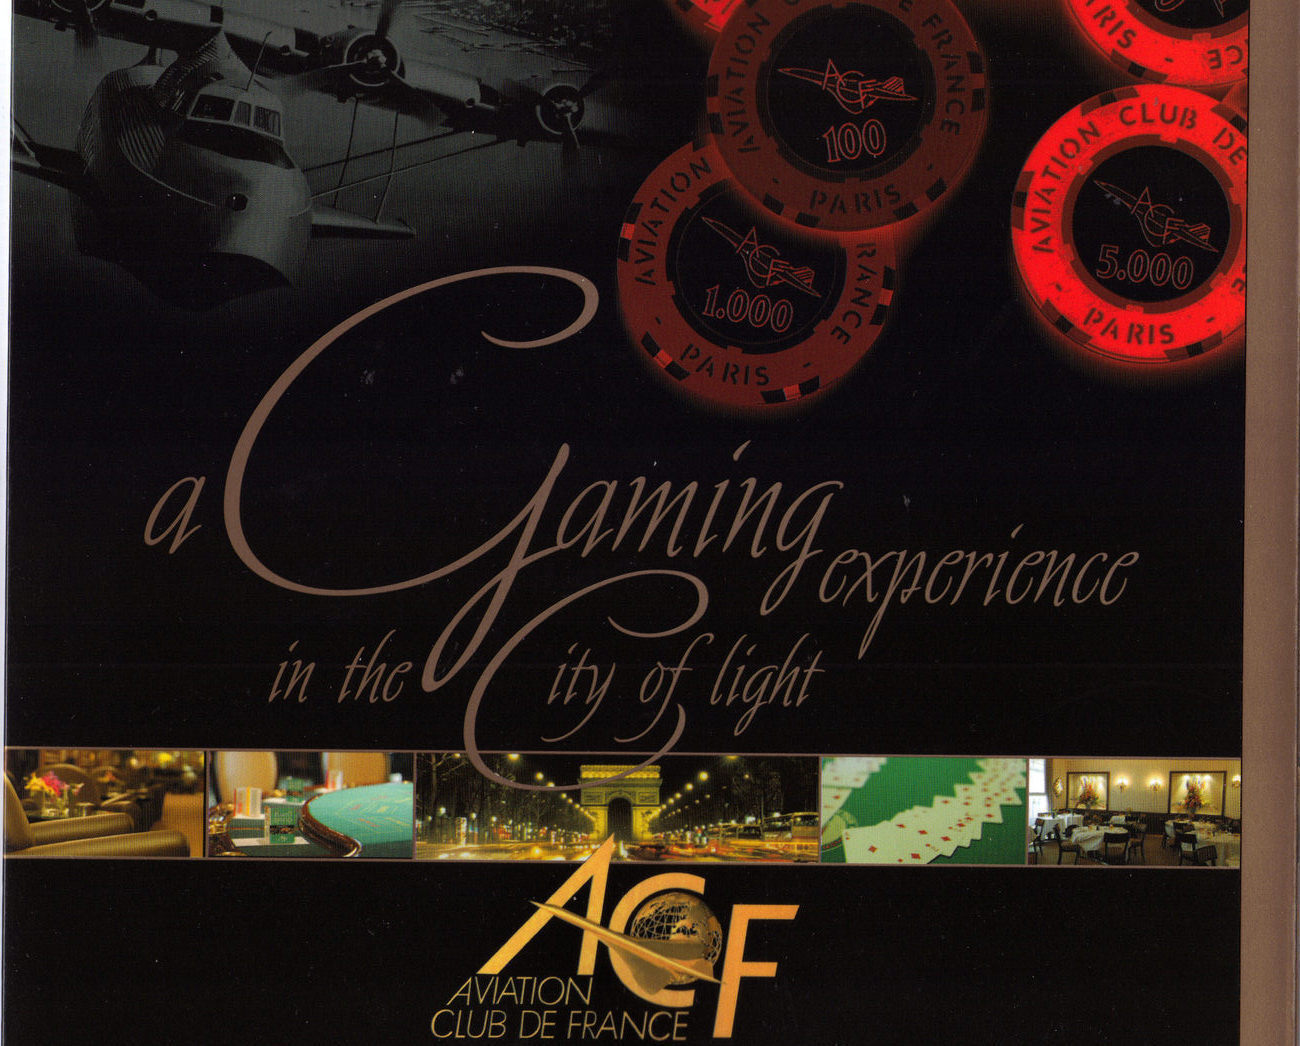 Primary image for AVIATION CLUB FRANCE A Gaming Experience in the City of Ligh